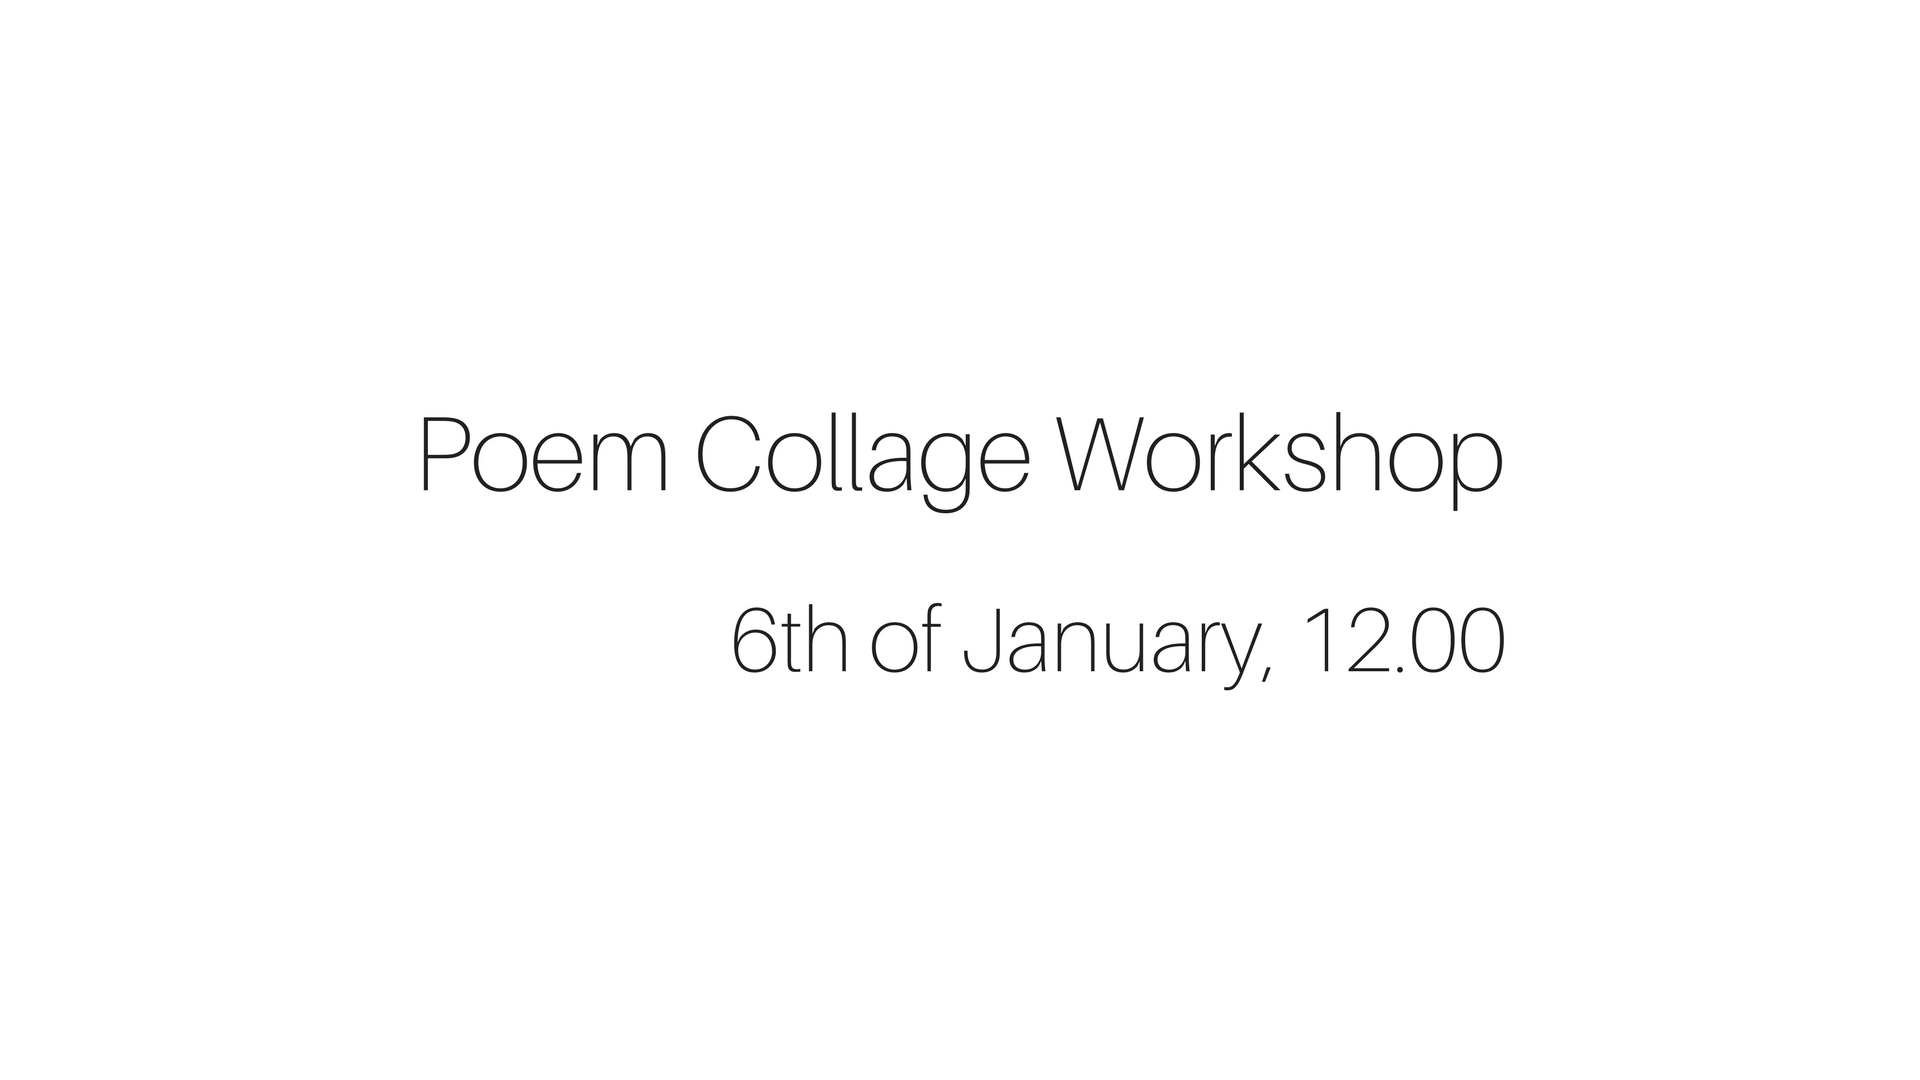 poem collage workshop